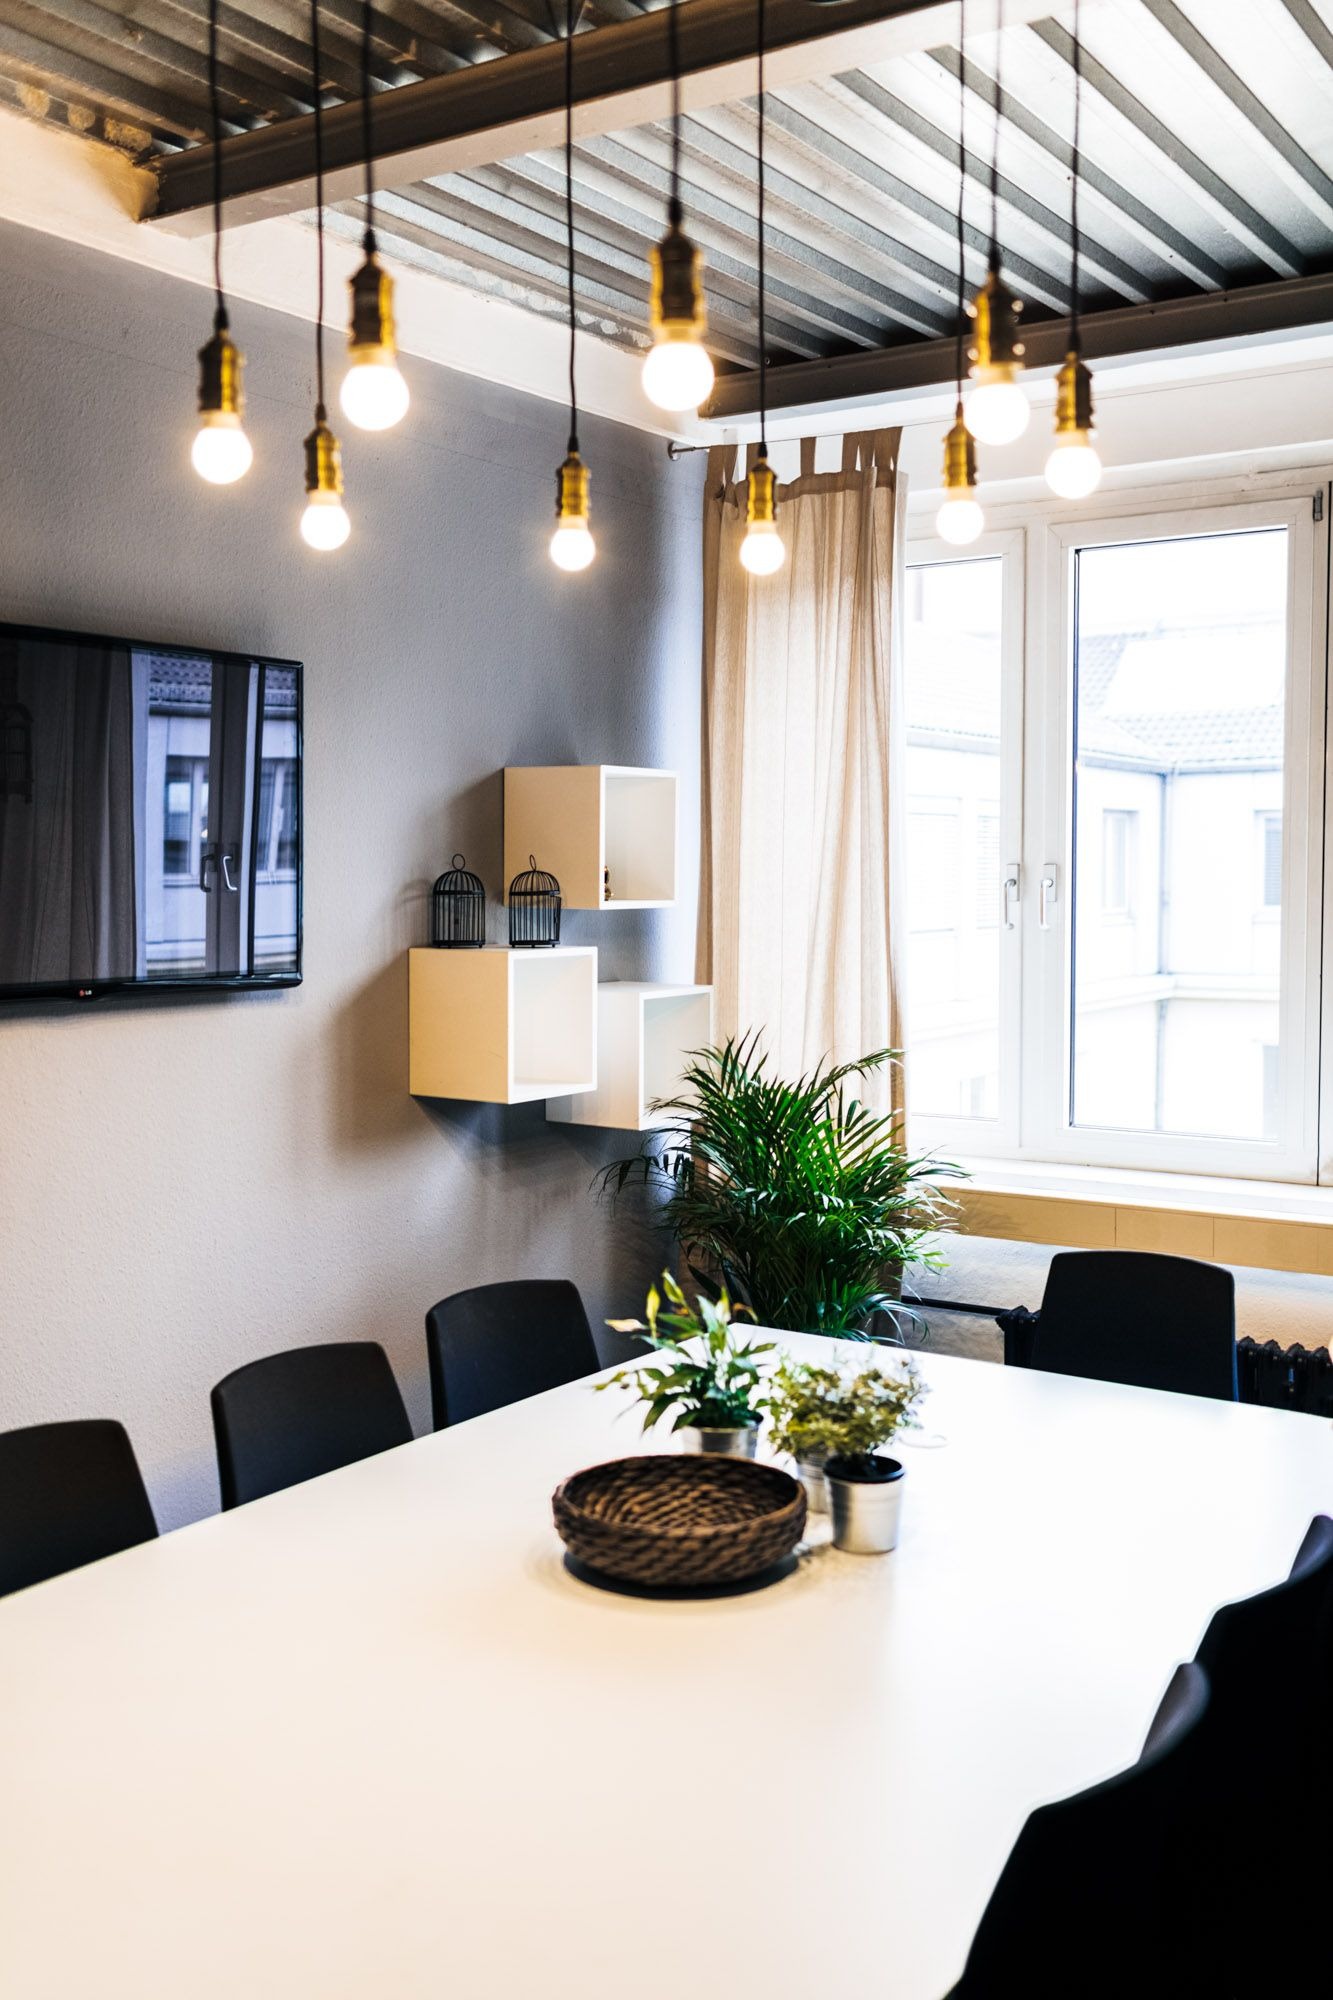 Lighting Effect At Rent24 Coworking Space, Berlin #99Chairs #Meetingroom #Atmosphere